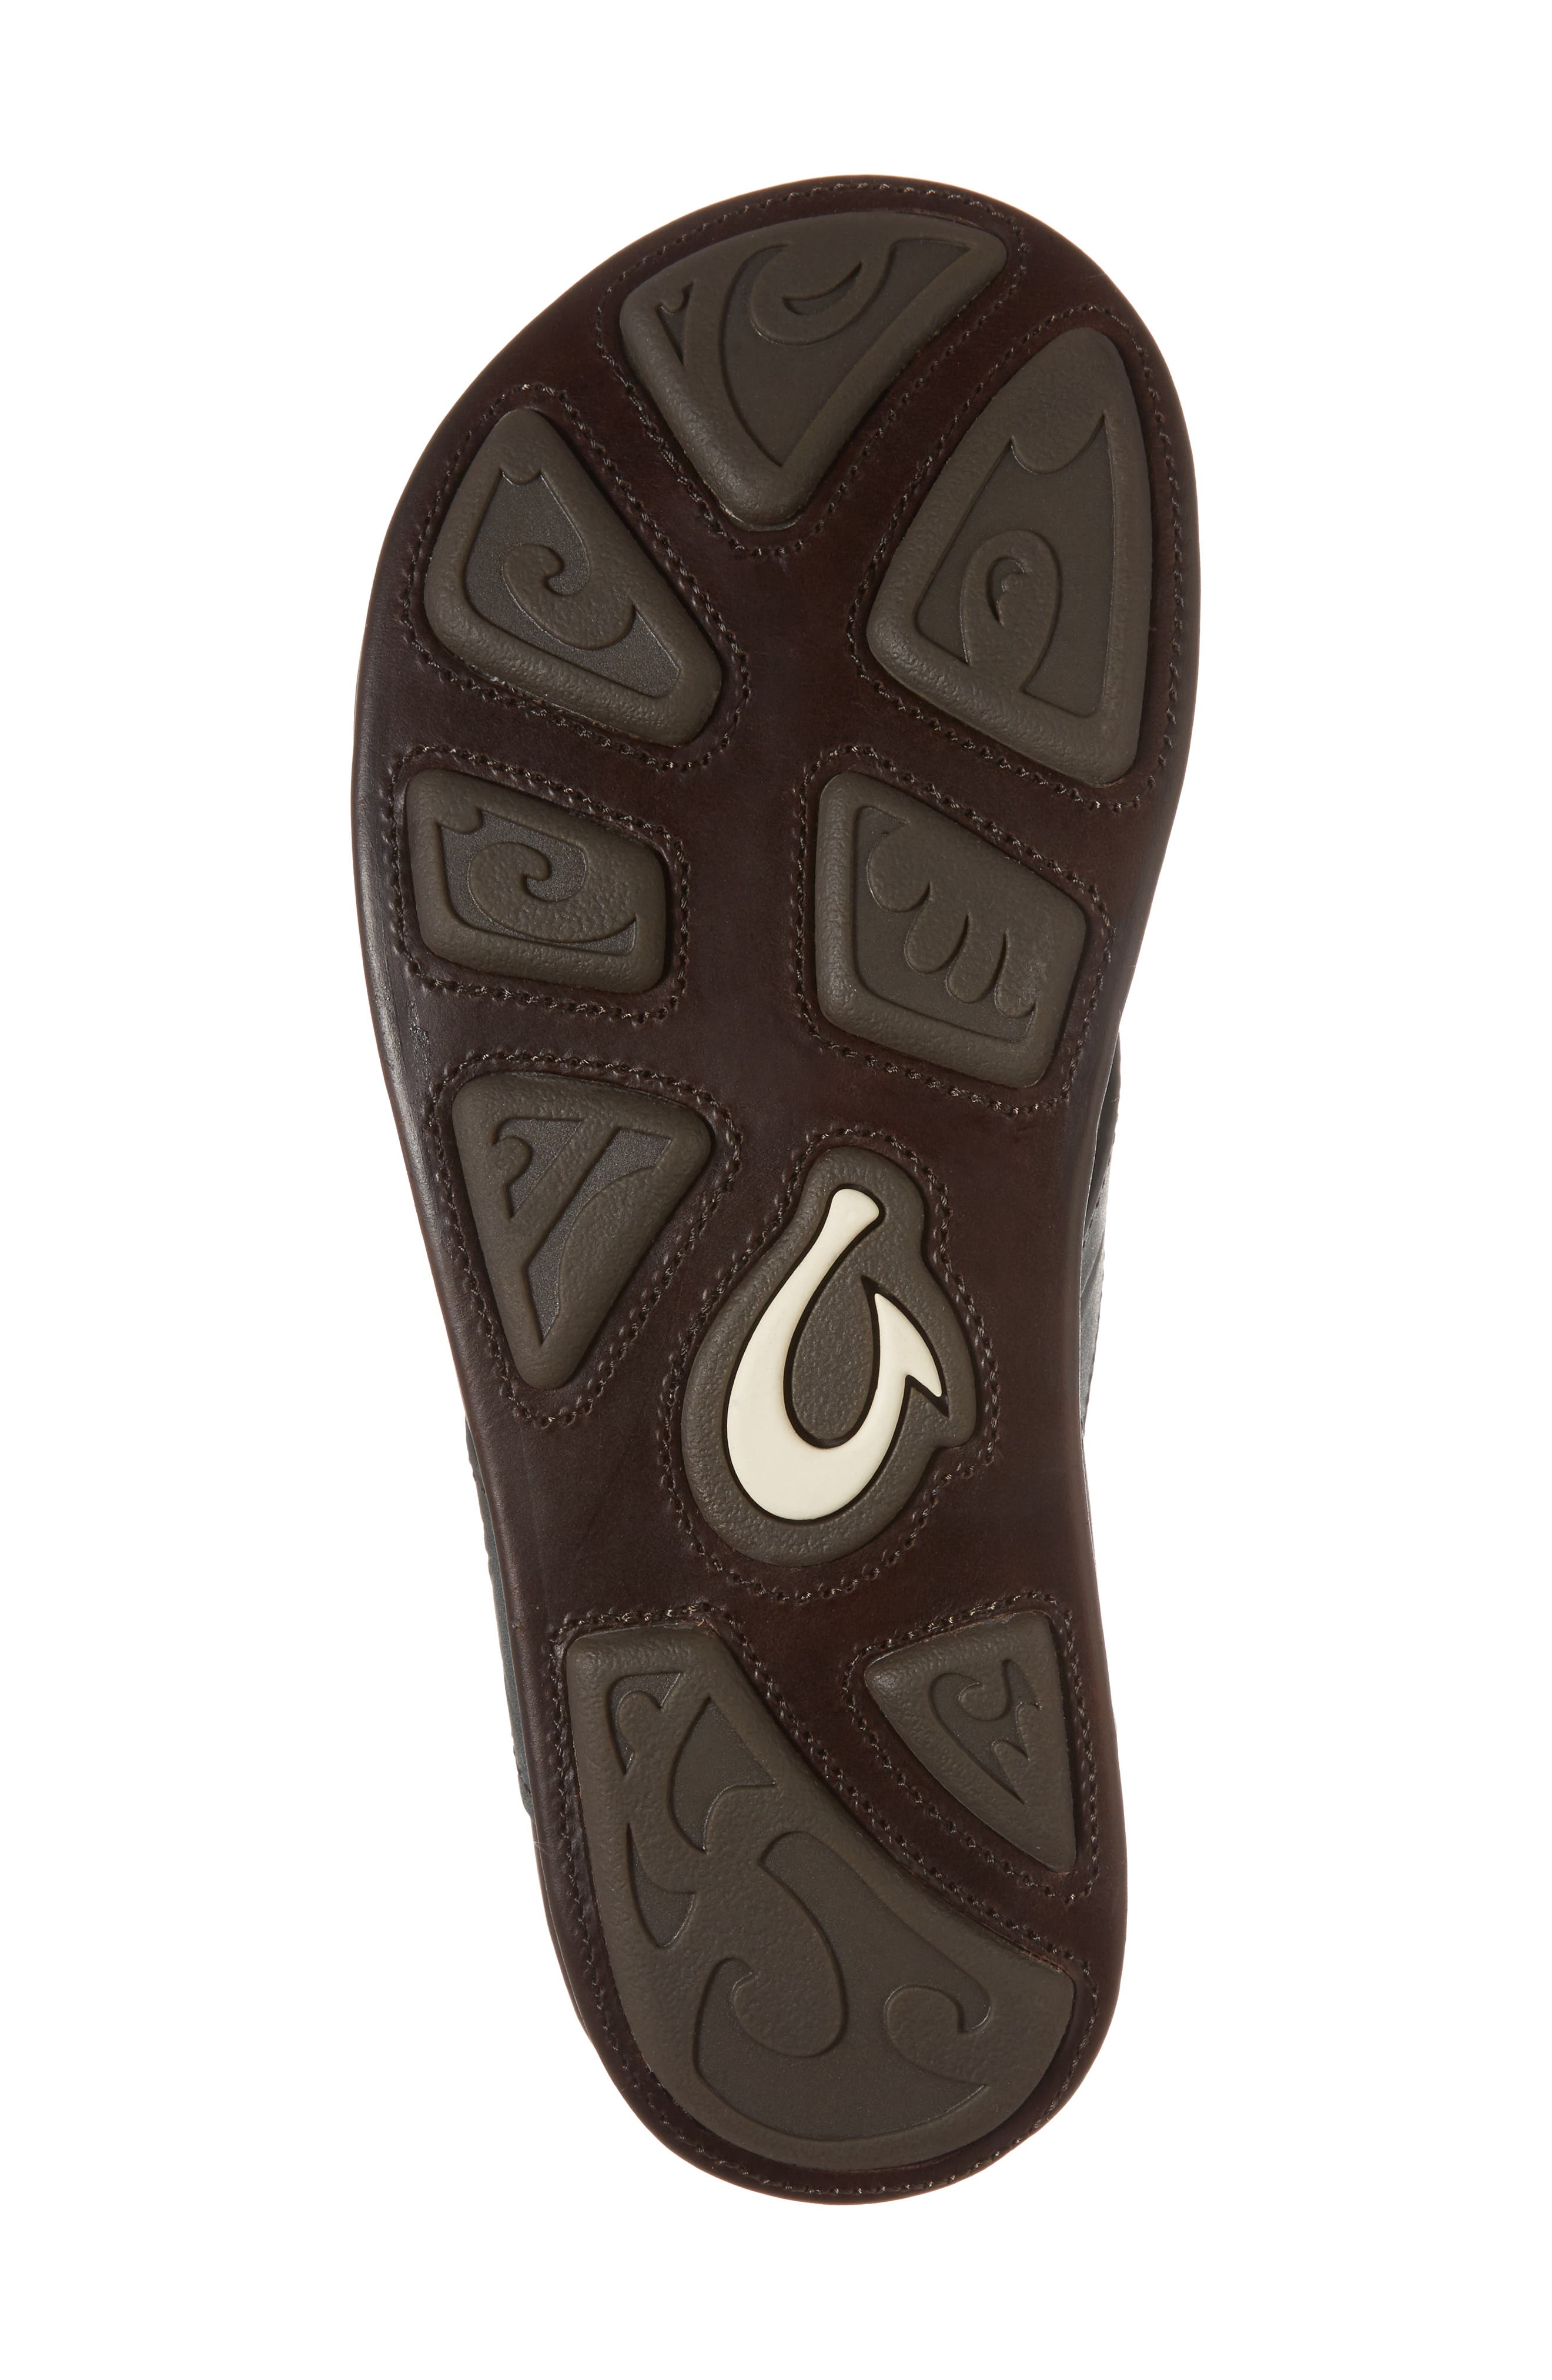 Kohana Kai Flip Flop,                             Alternate thumbnail 6, color,                             Moss/ Dark Wood